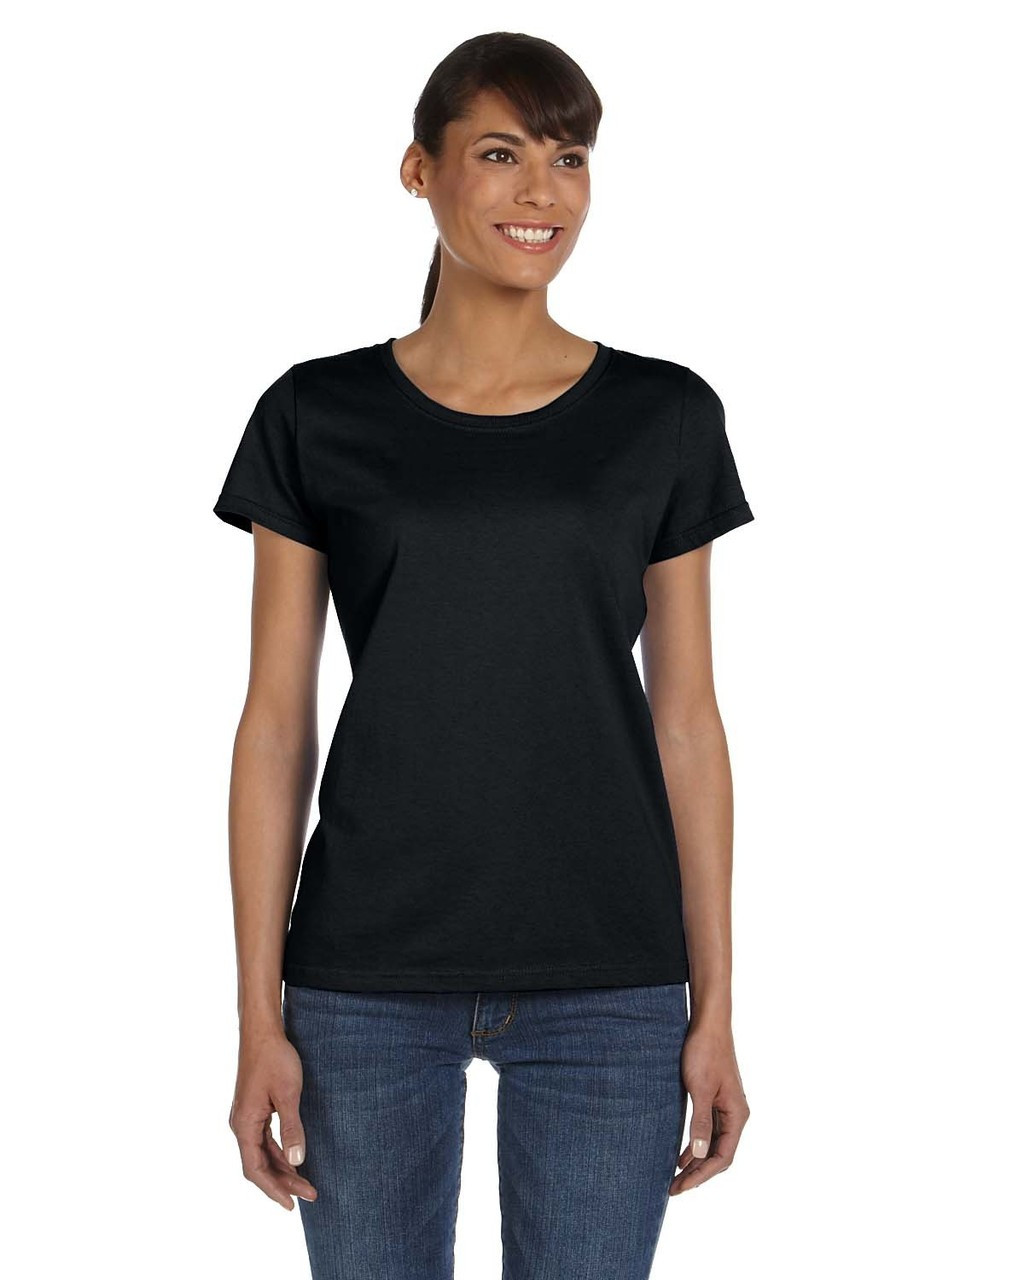 Black - L3930R Fruit of the Loom Ladies' 100% Heavy Cotton HD® T-Shirt | Blankclothing.ca